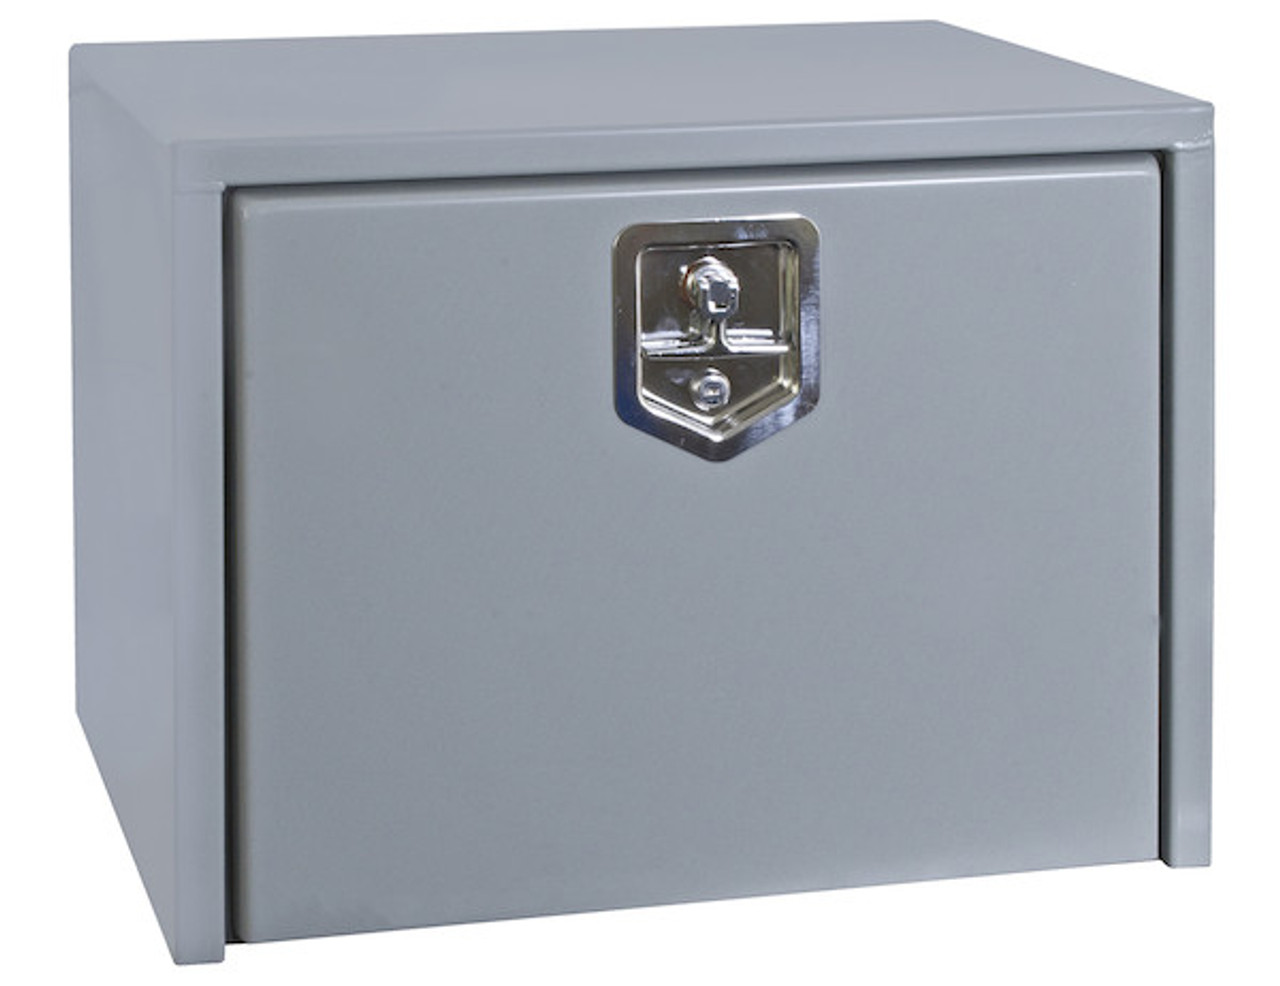 1702905 BUYERS PRODUCTS PRIMED STEEL UNDERBODY TRUCK BOX TOOLBOX